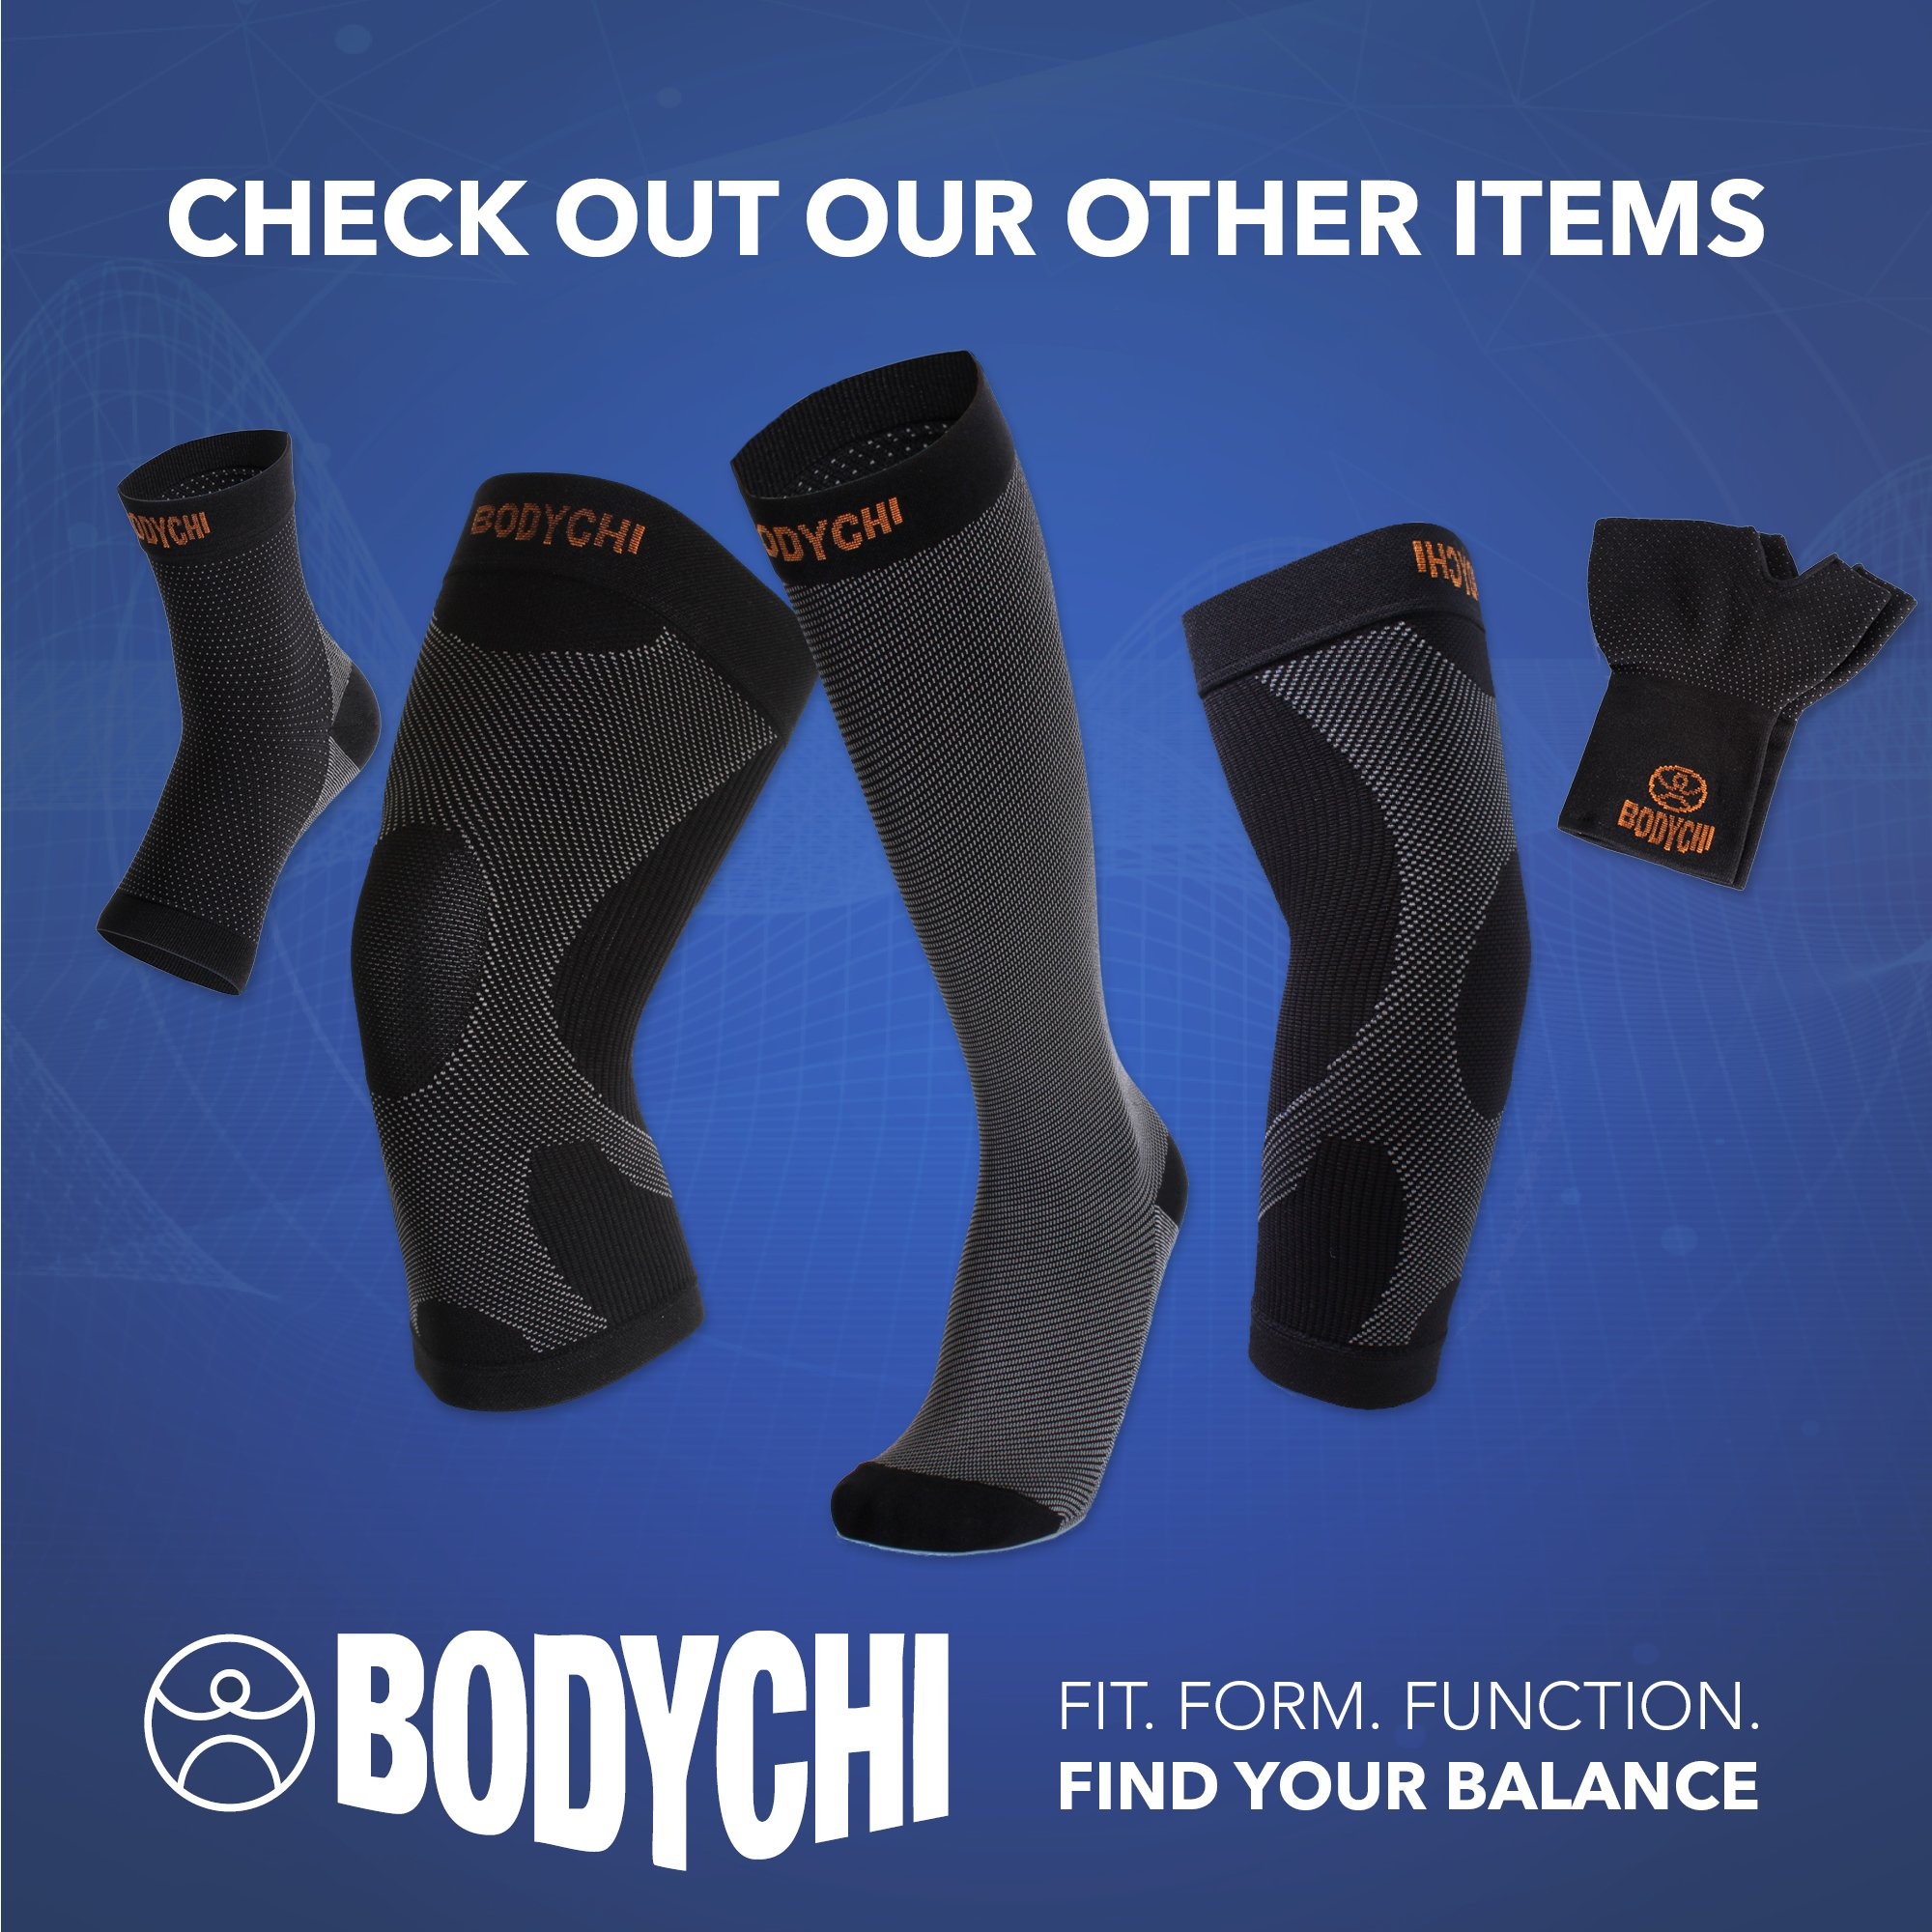 BODYCHI Men and Women Seamless 20-30 mmHg Compression Knee Support Sleeve for Joint Protection and Support for Running, Sports, Knee Pain Relief, Knee Sleeve, Comes in a Pair, Large by BODYCHI (Image #5)